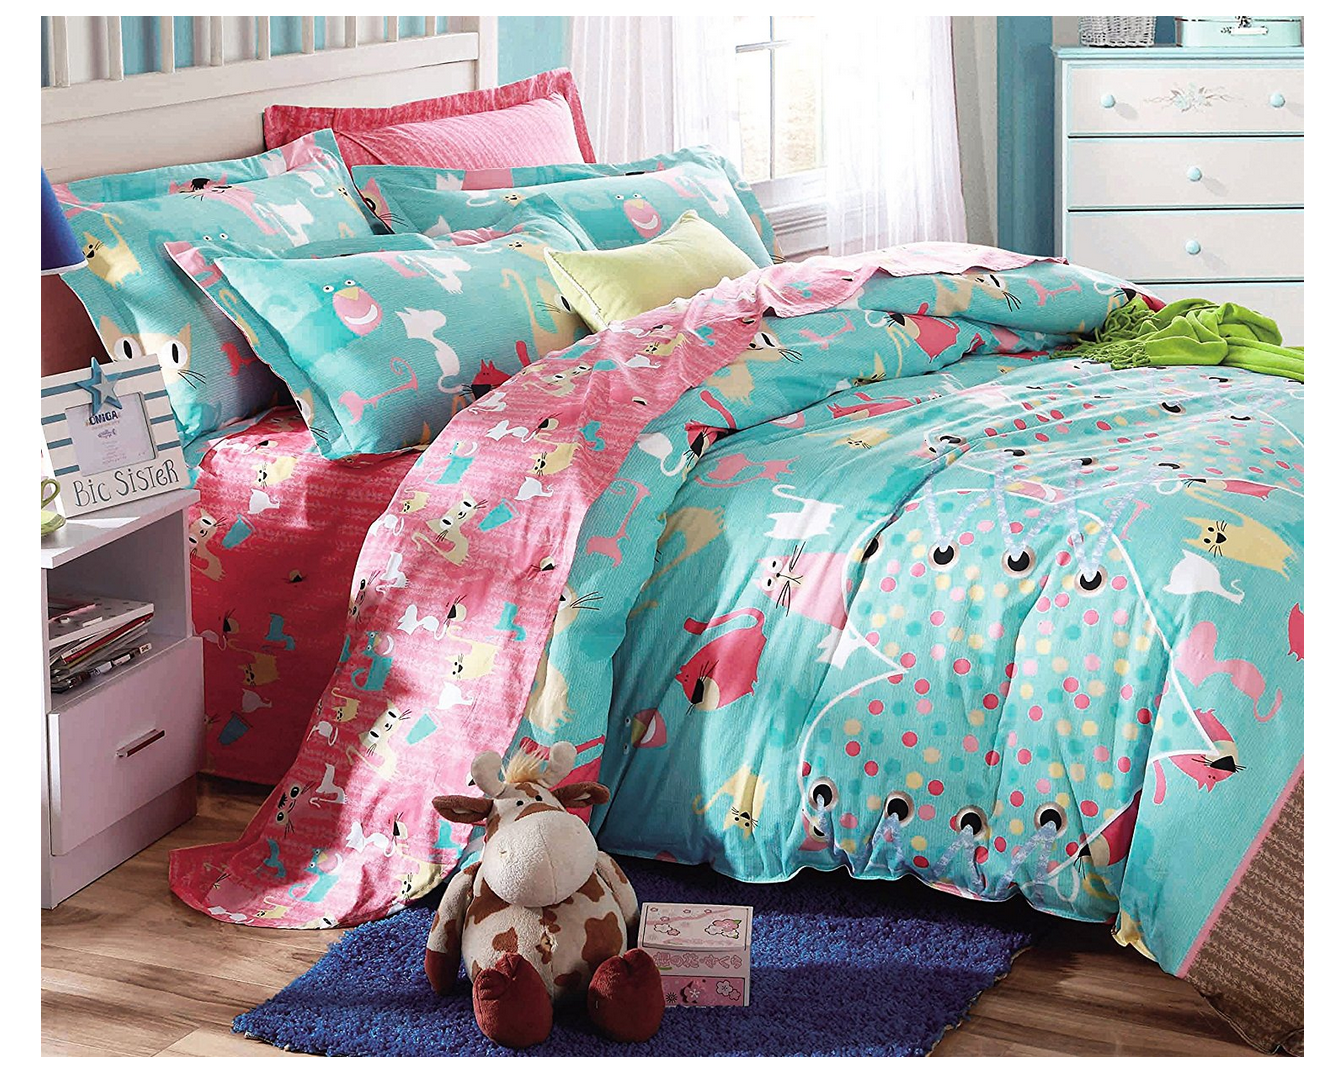 Cliab Cat Bedding for Girls Full Coral Green Cats Bed